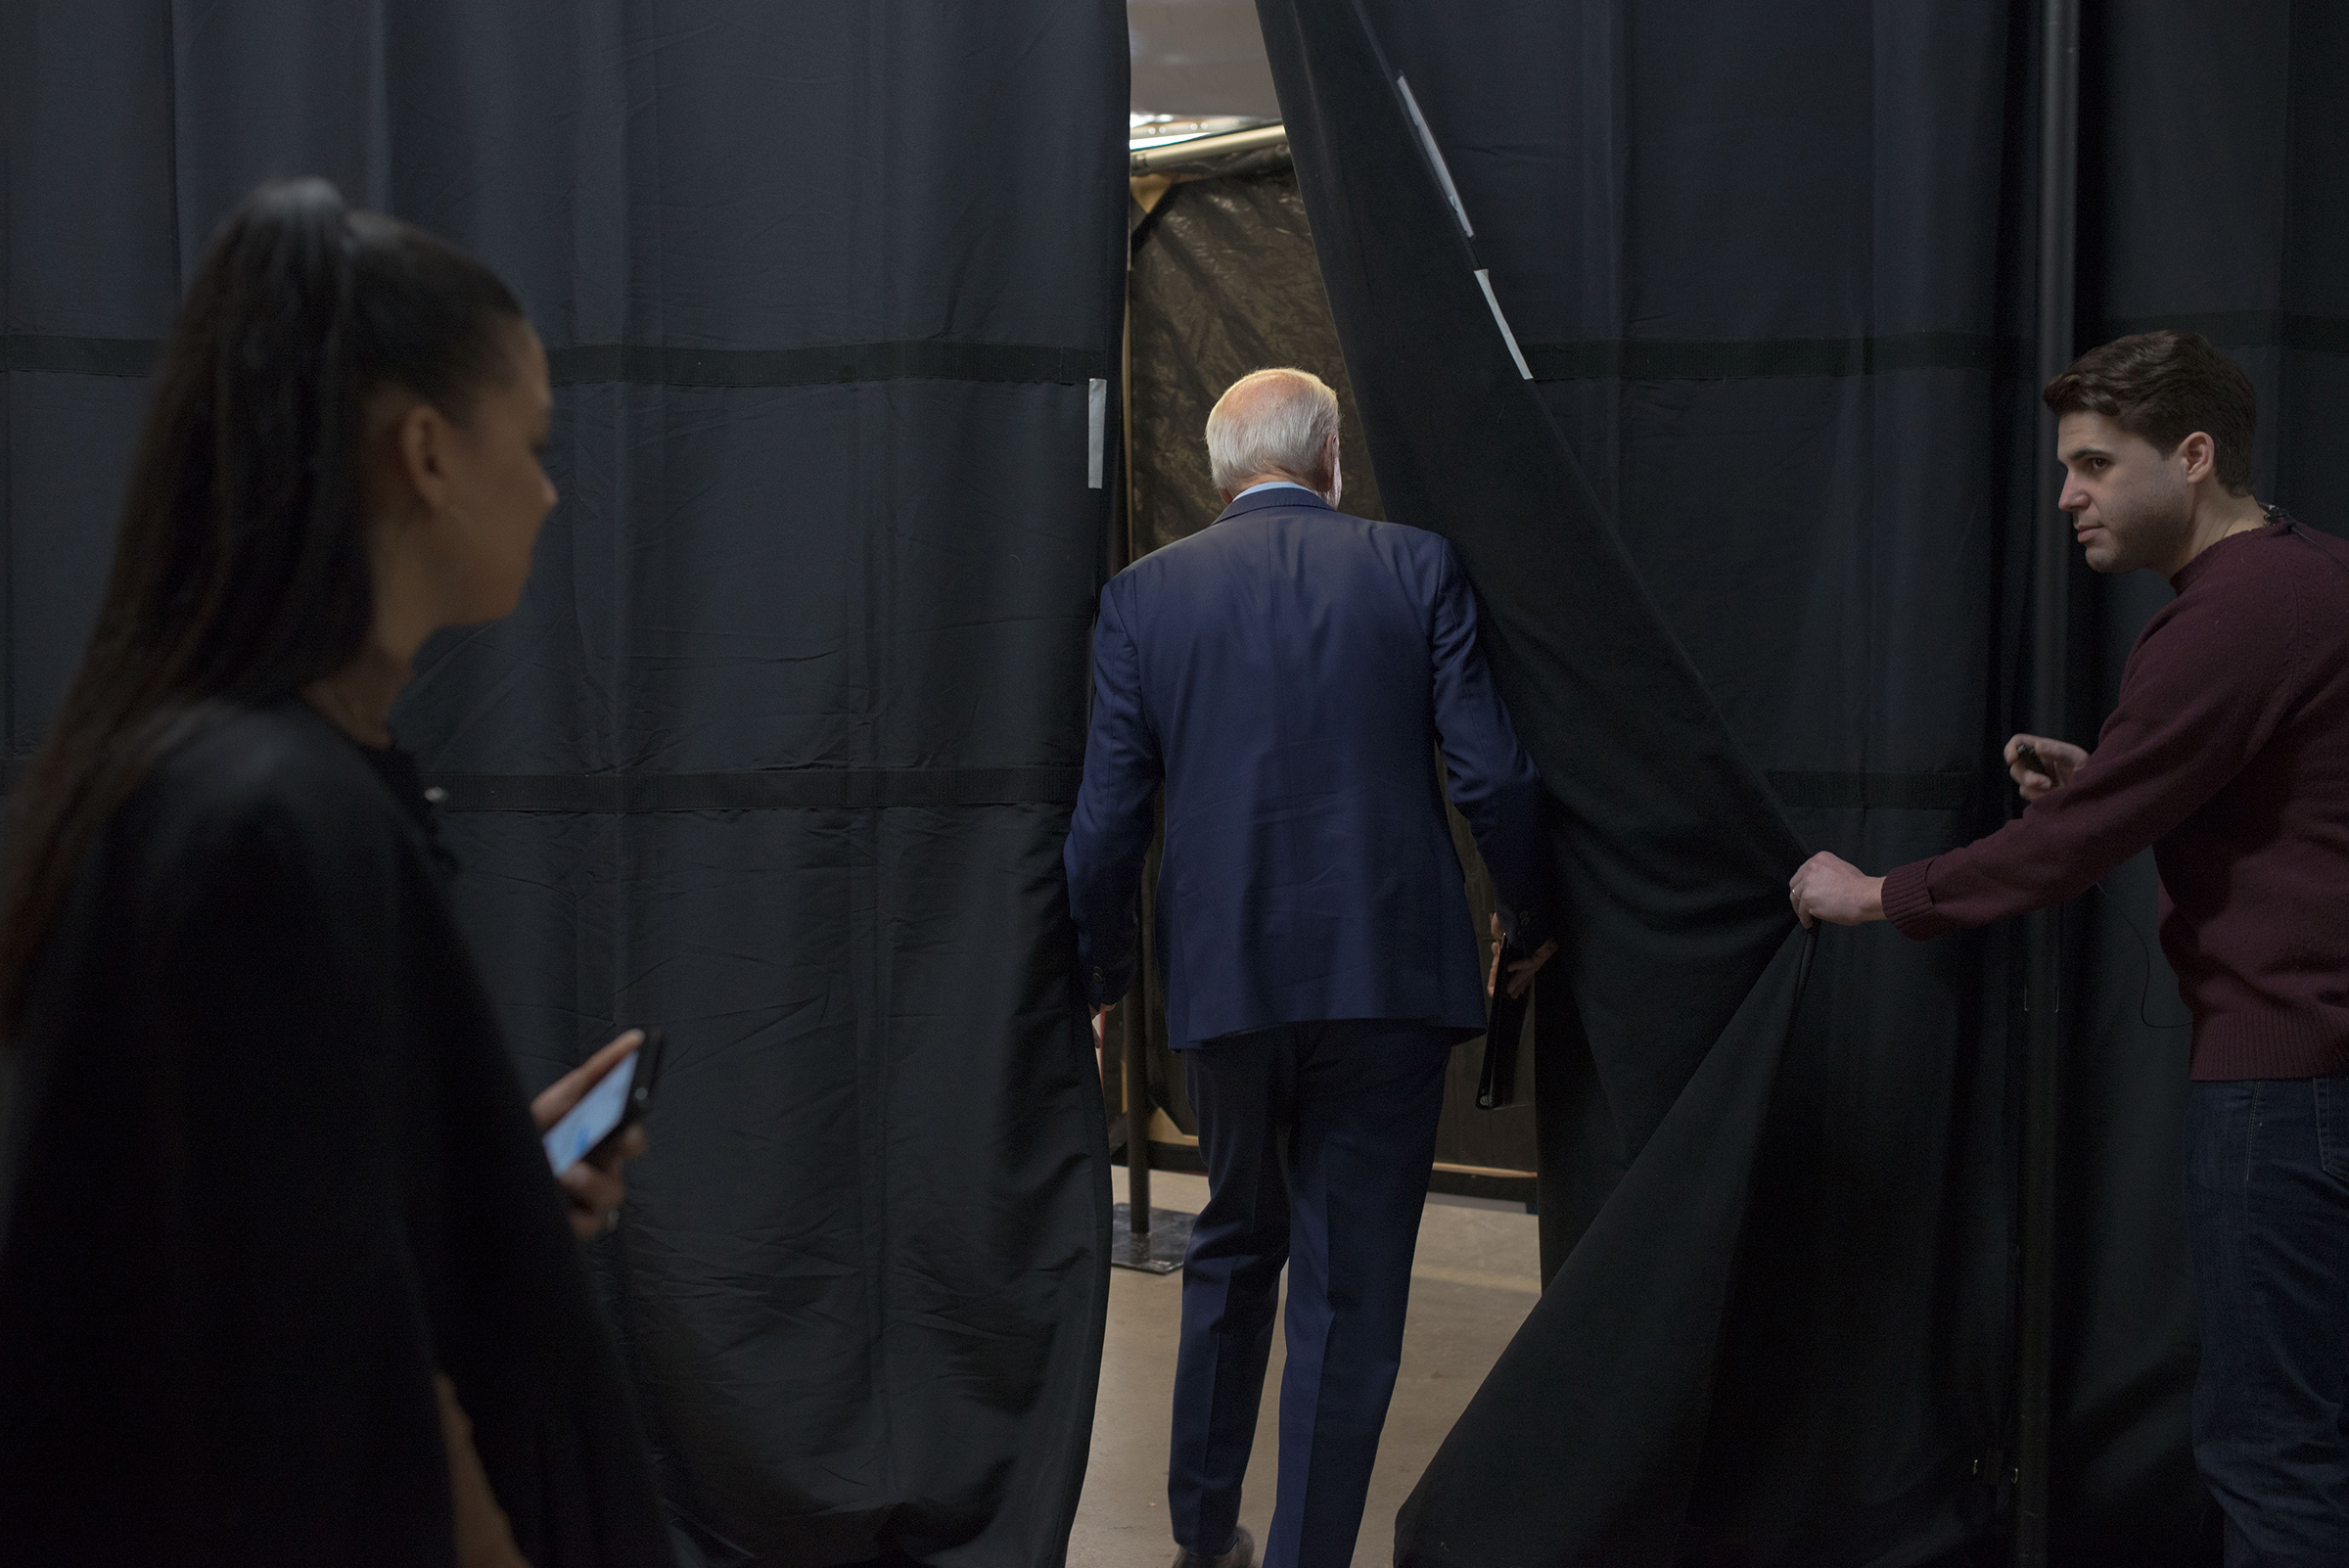 Biden waits backstage before his campaign event in Mason City